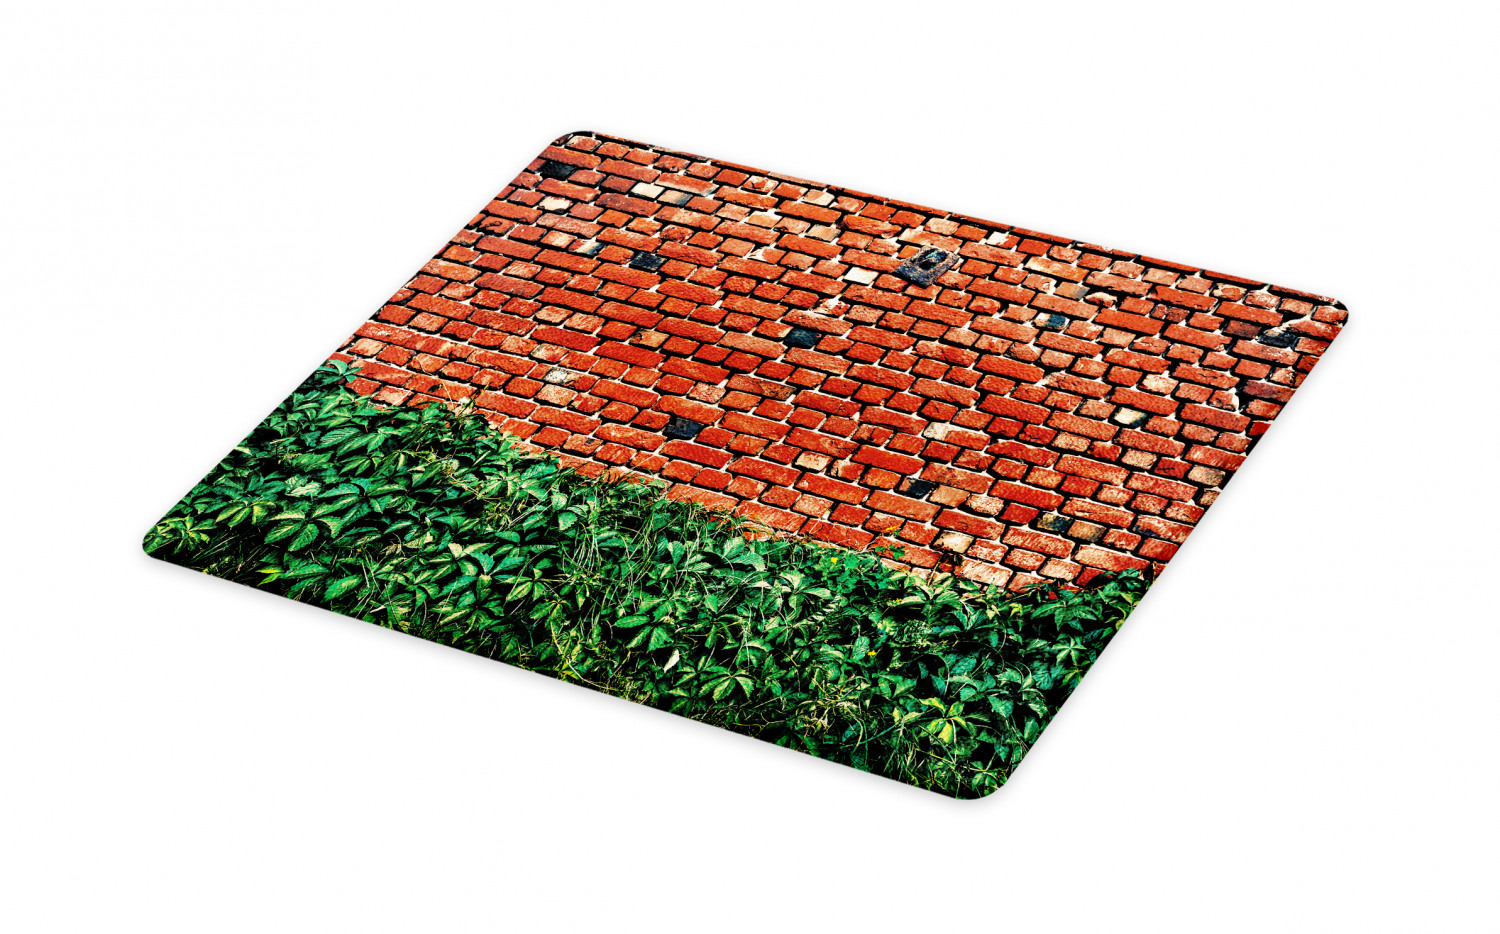 Brick Wall Cutting Board High Contrast Image Of Old Brick Wall Covered With Green Leaves Decorative Tempered Glass Cutting And Serving Board In 3 Sizes By Ambesonne Walmart Com Walmart Com